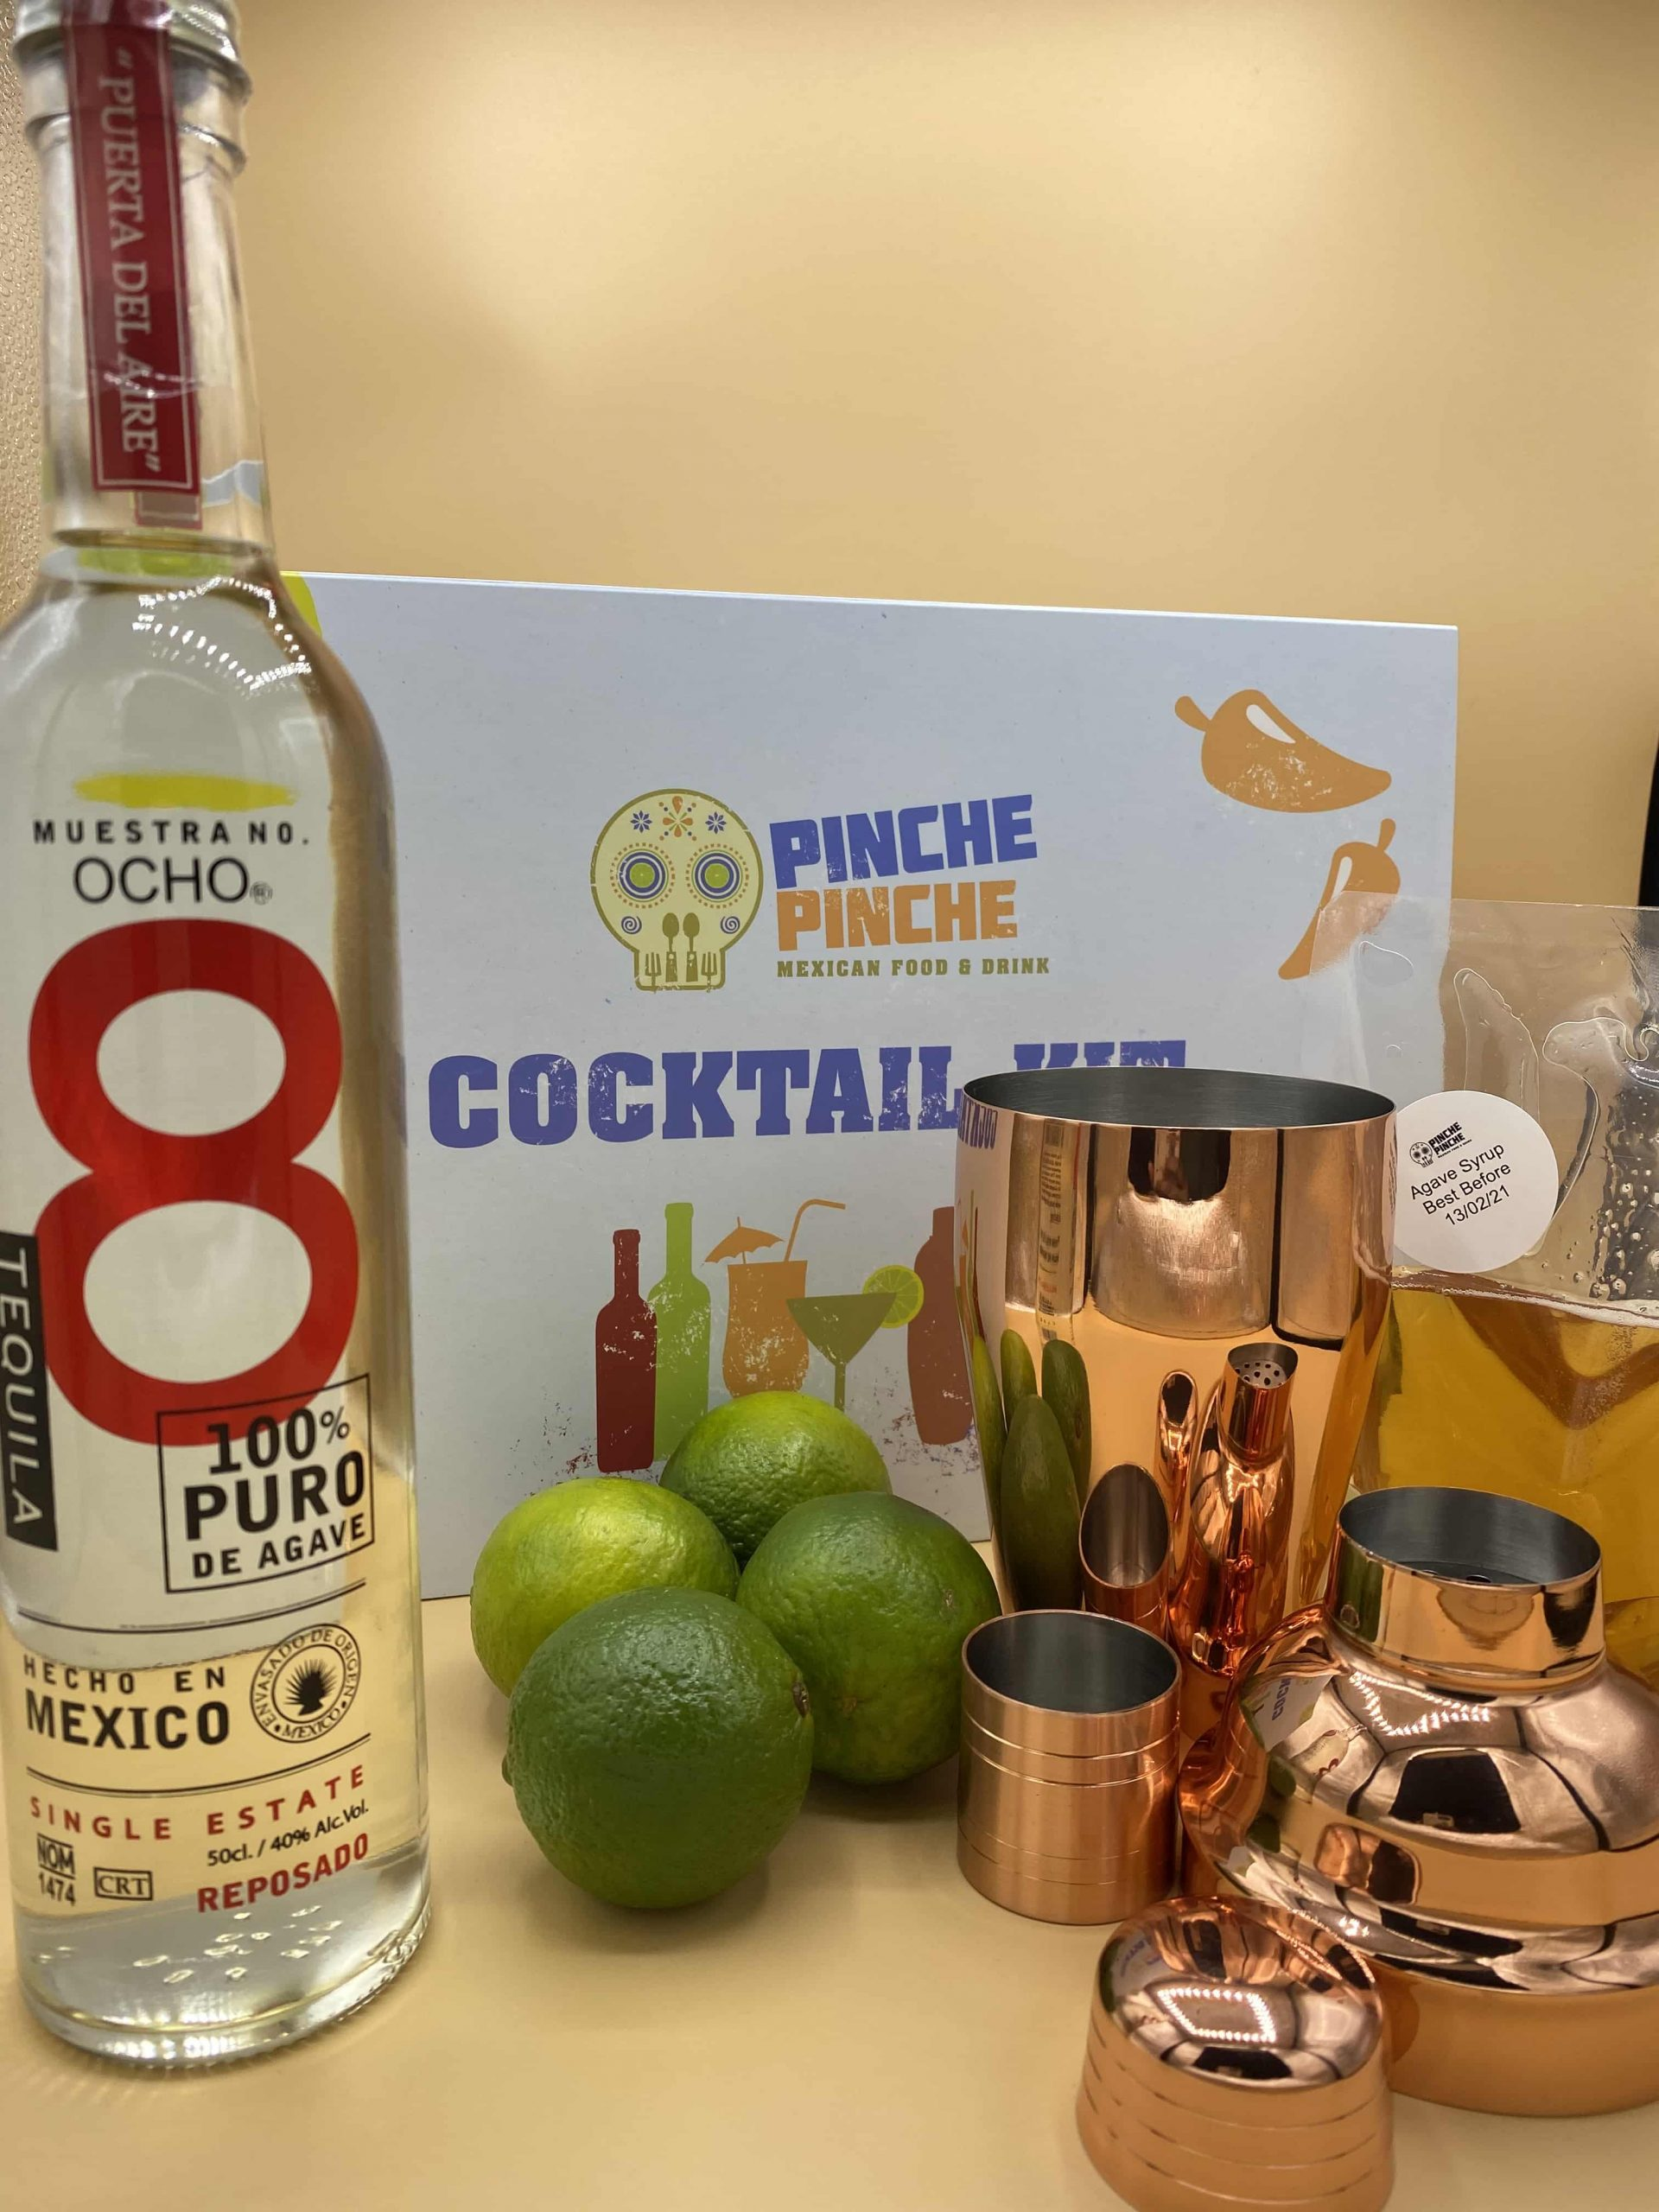 Picture showing a cocktail kit and contents